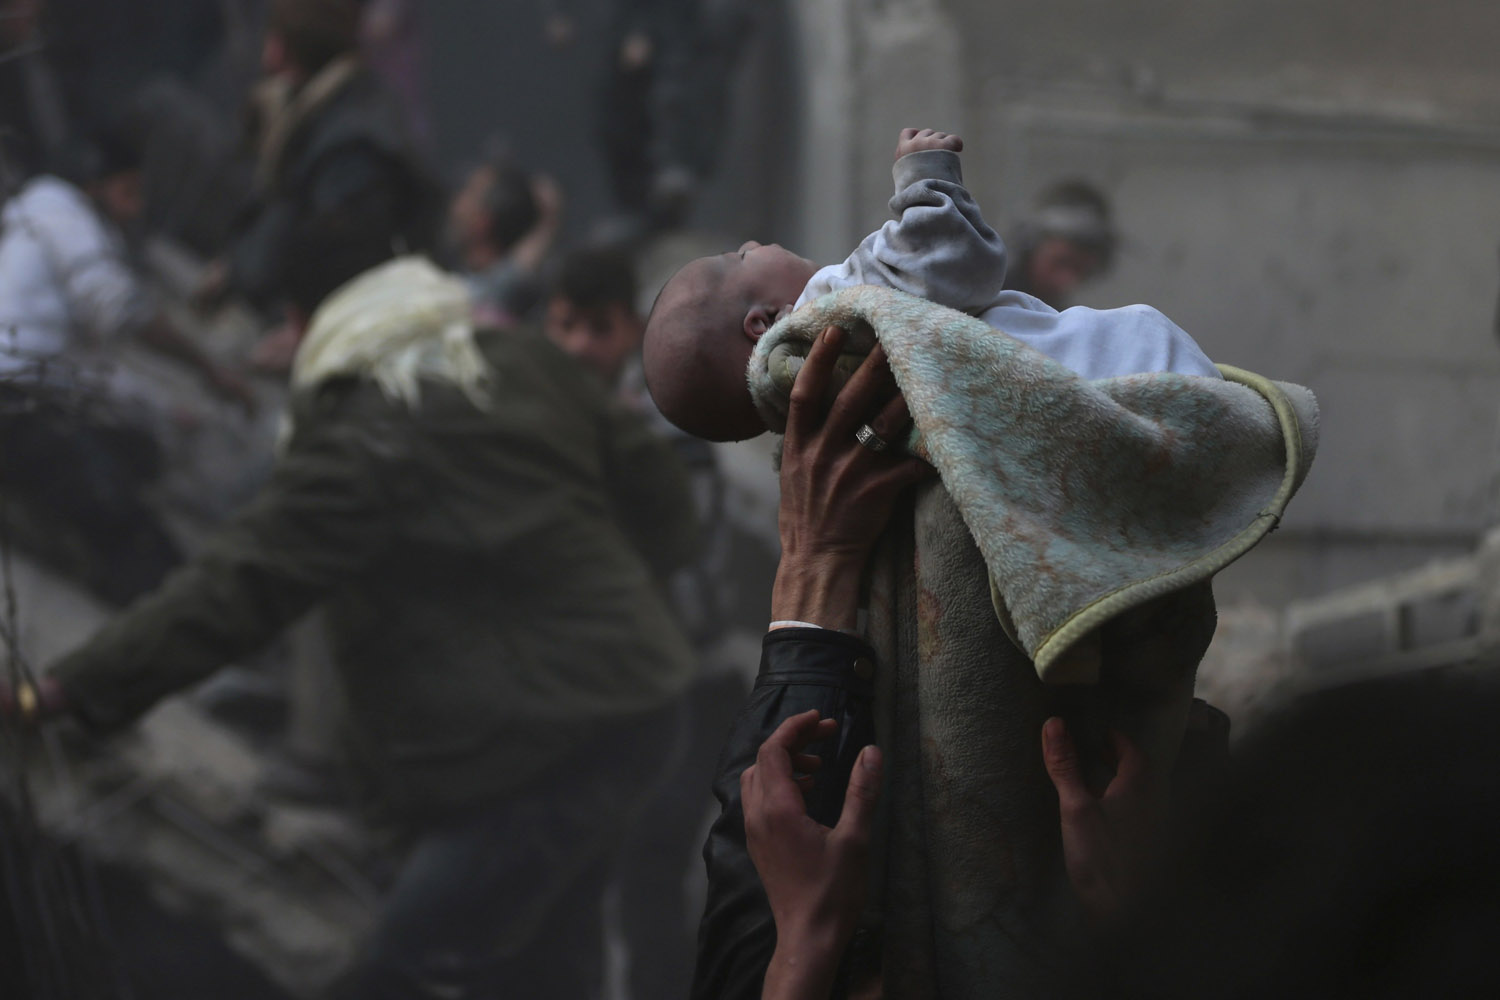 Jan. 7, 2014. Men hold up a baby who survived what activists say was an airstrike by forces loyal to Syrian President Bashar al-Assad in the Duma neighbourhood of Damascus.